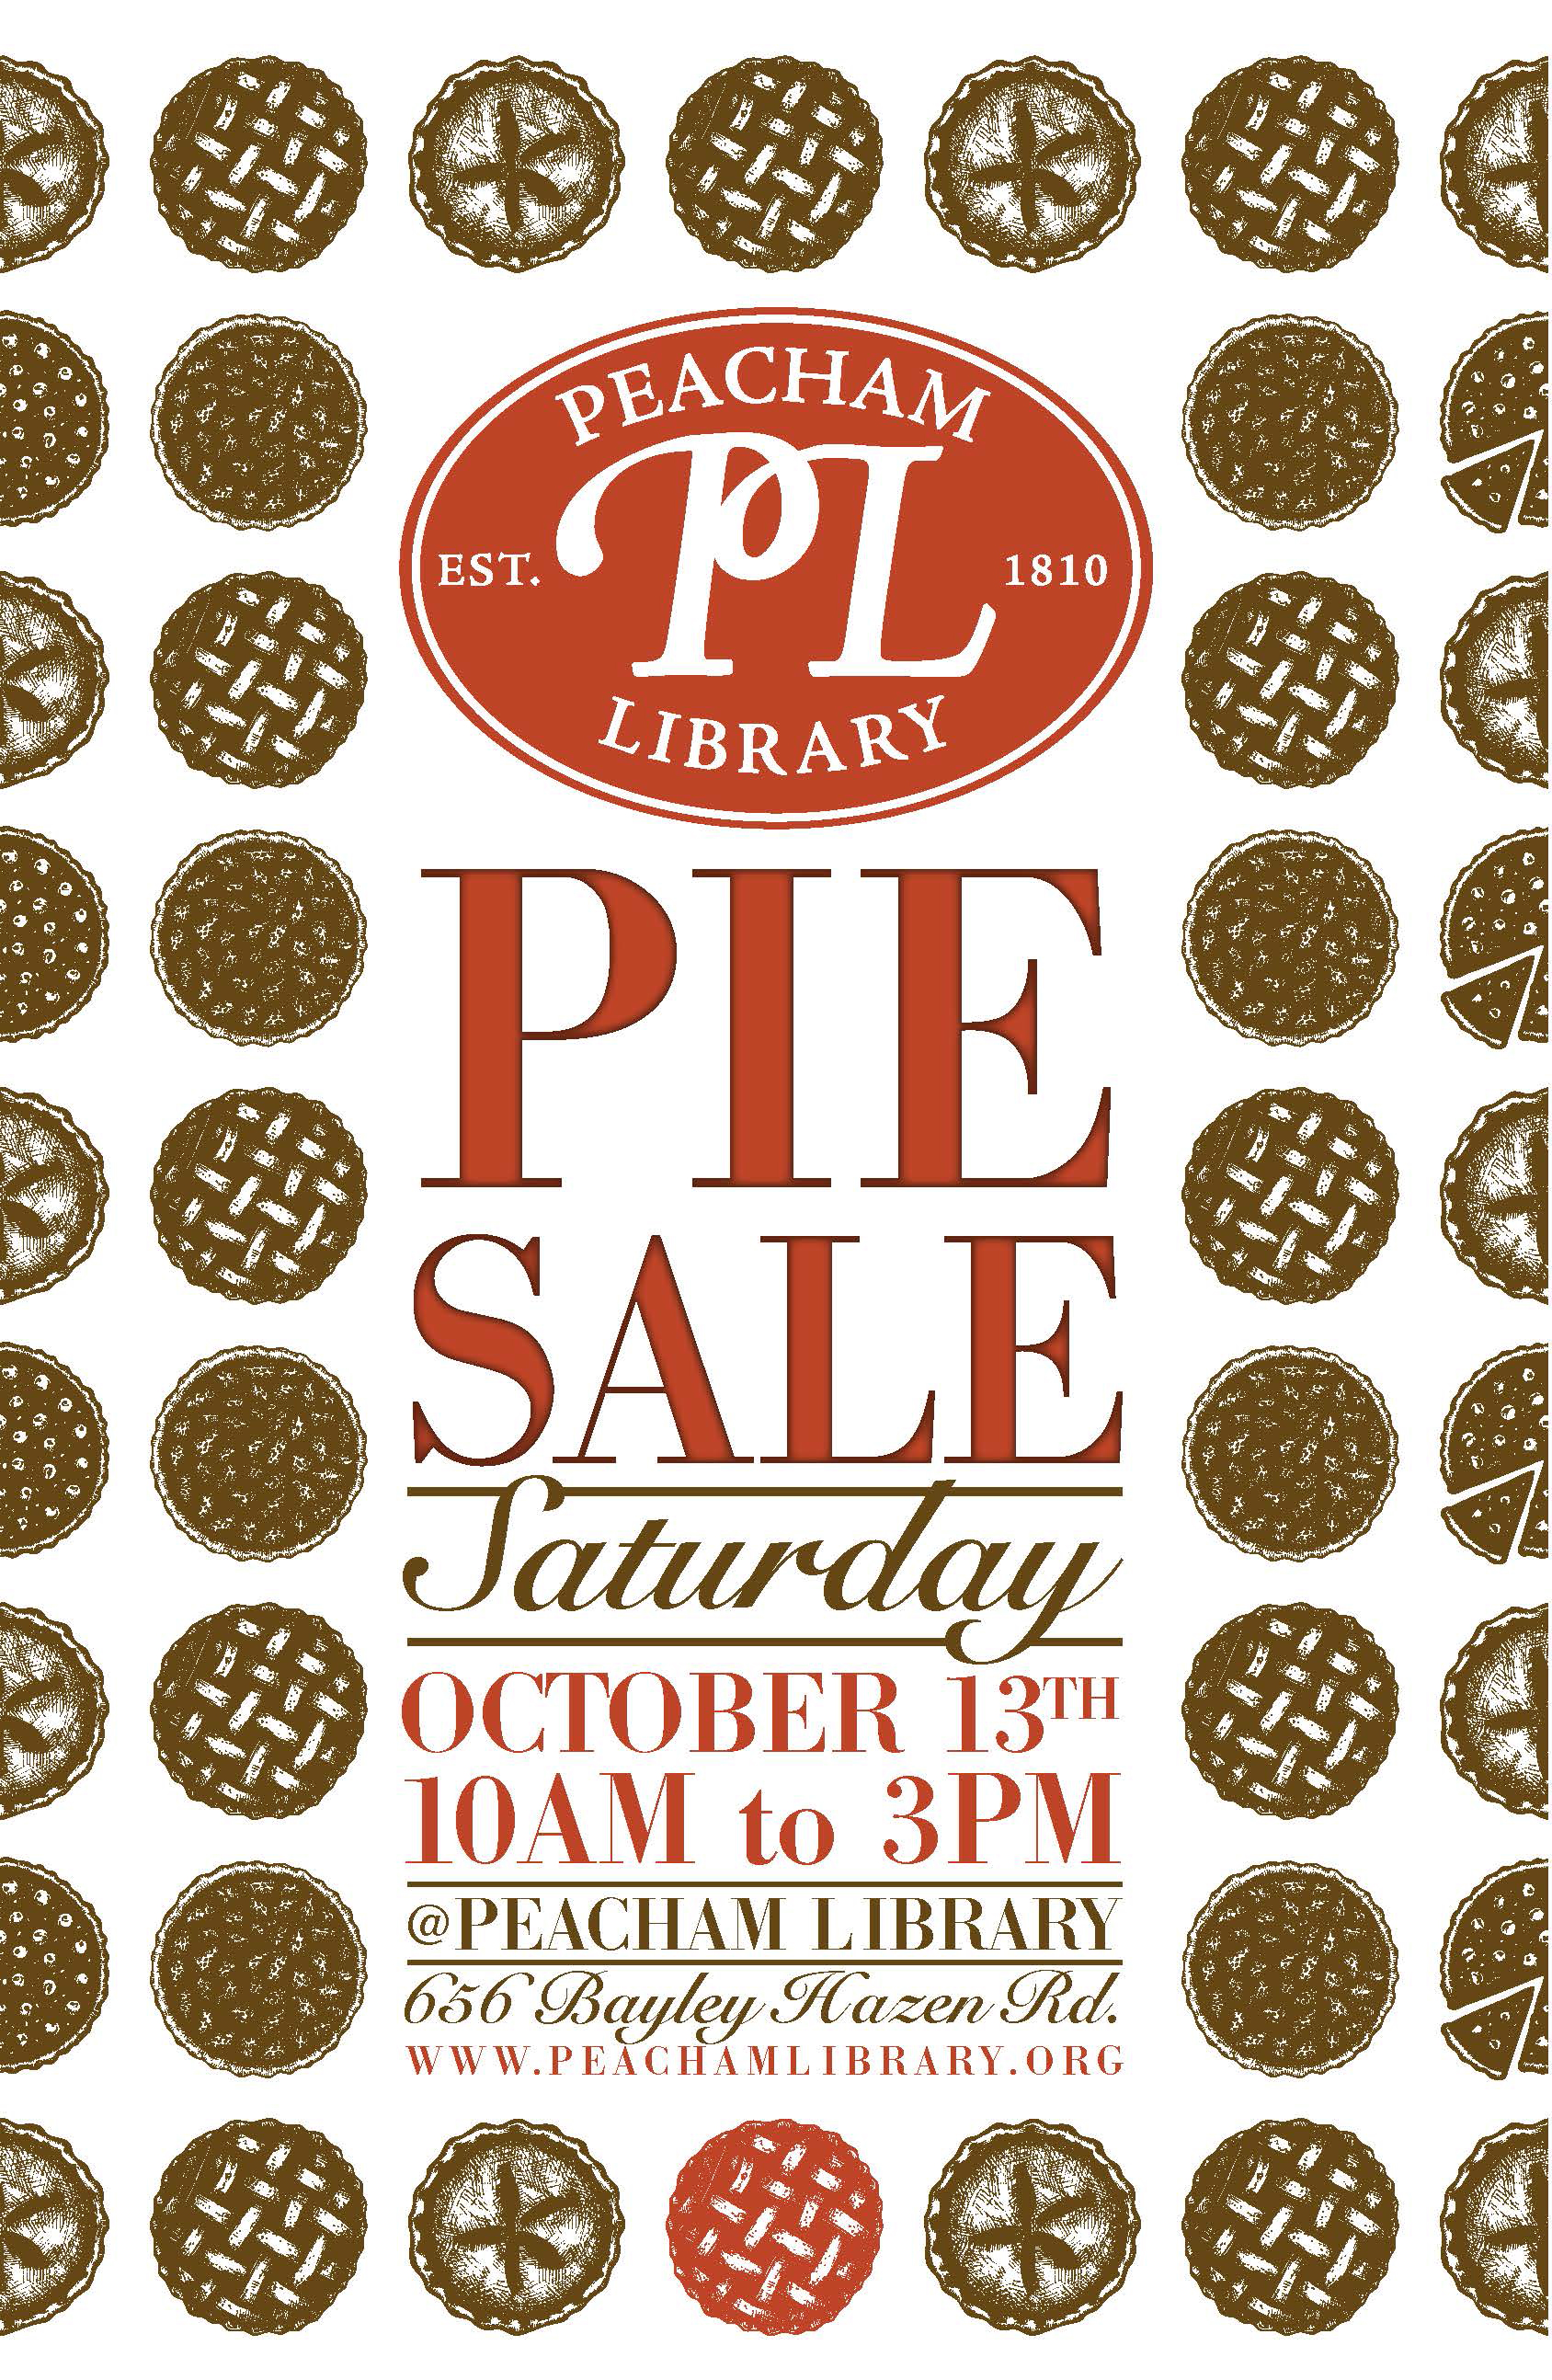 Library Pie Sale Poster